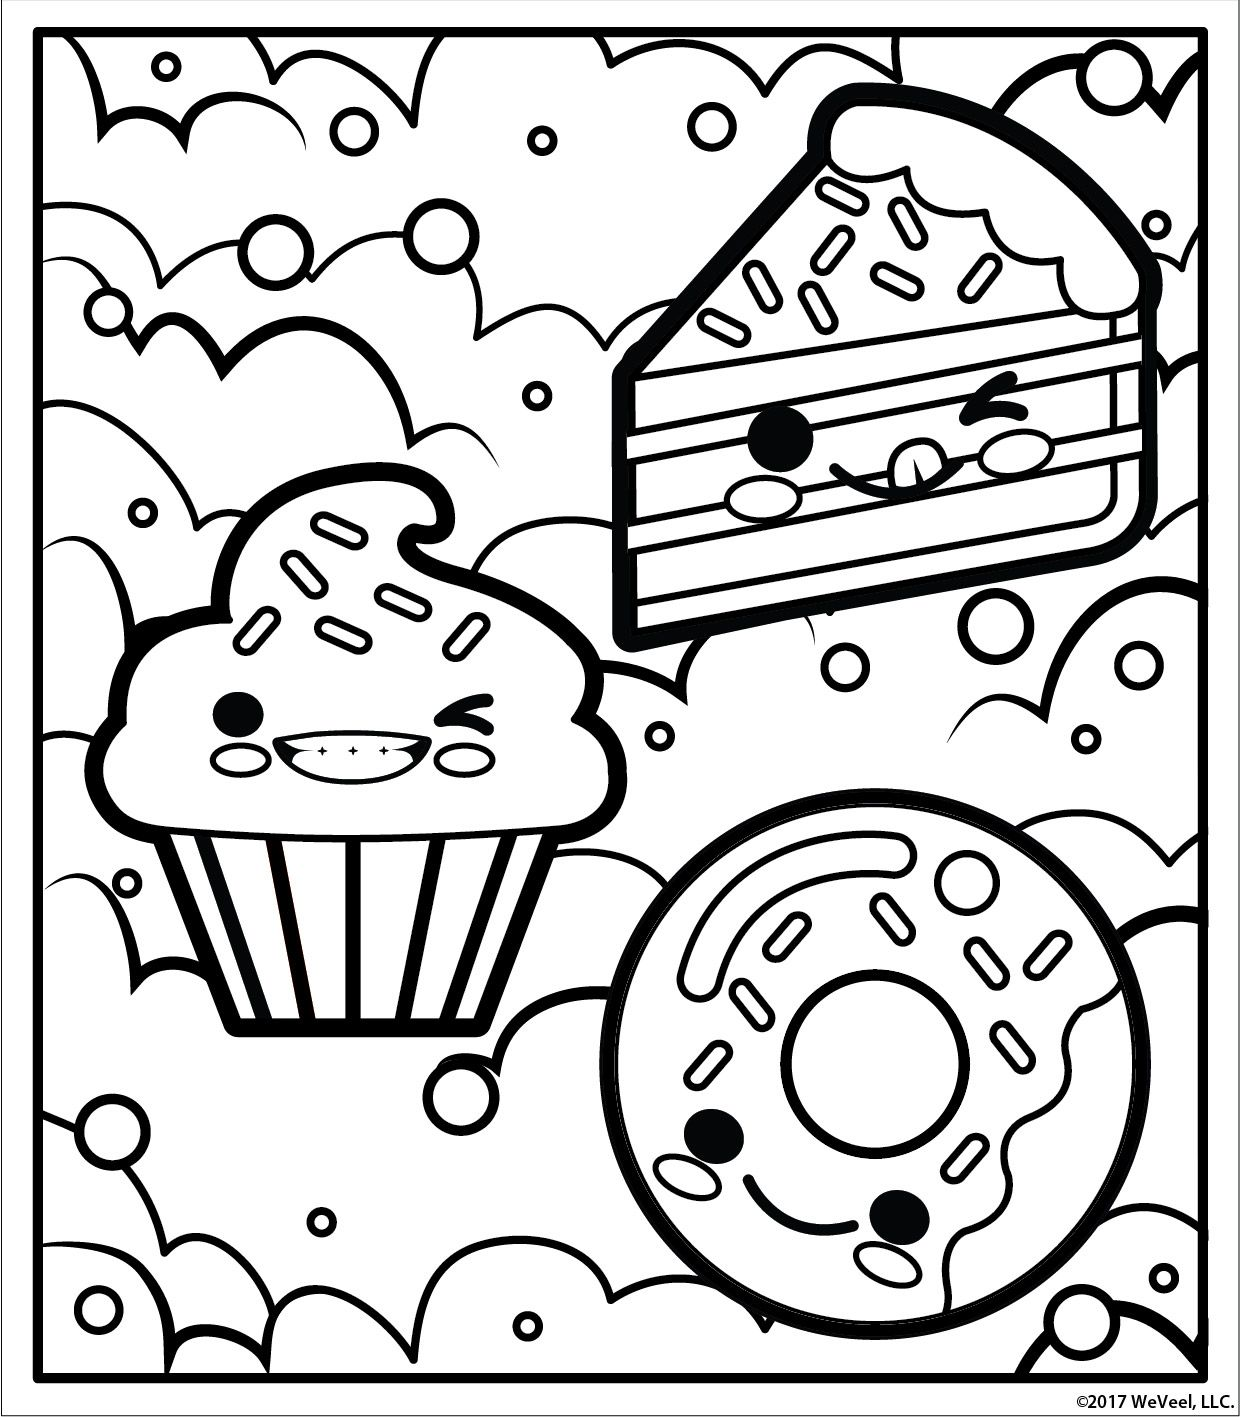 Free printable coloring pages at scentos.com Cute girl coloring